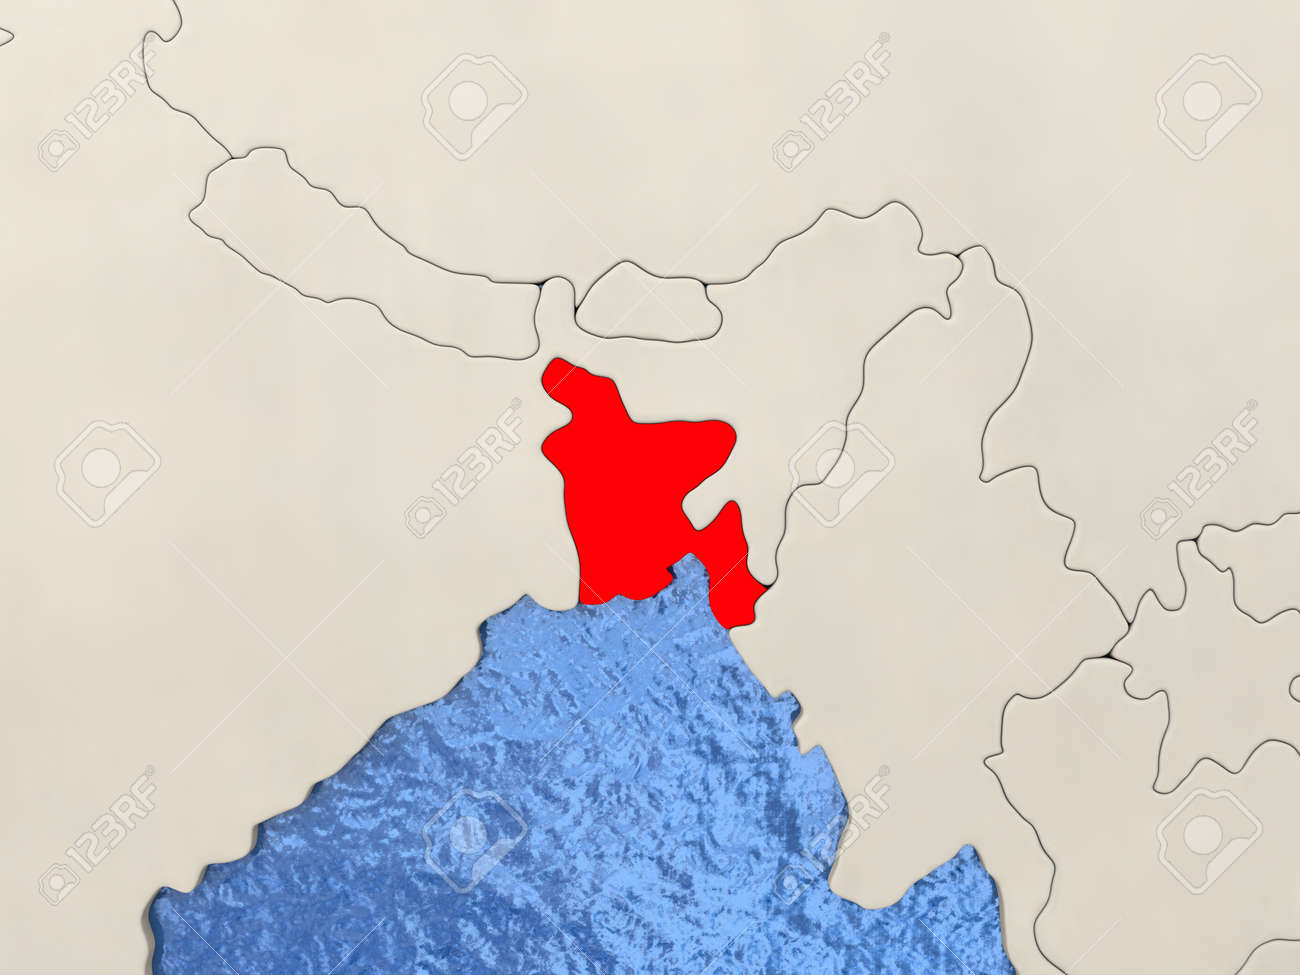 Bangladesh In Red On Political Map With Watery Oceans 3d